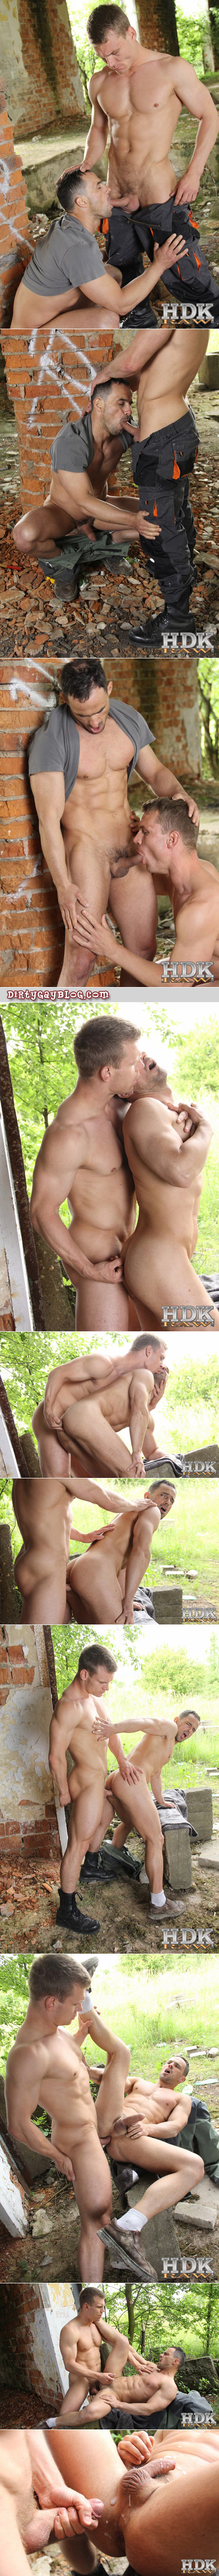 Smooth muscle men fucking bareback outdoors.